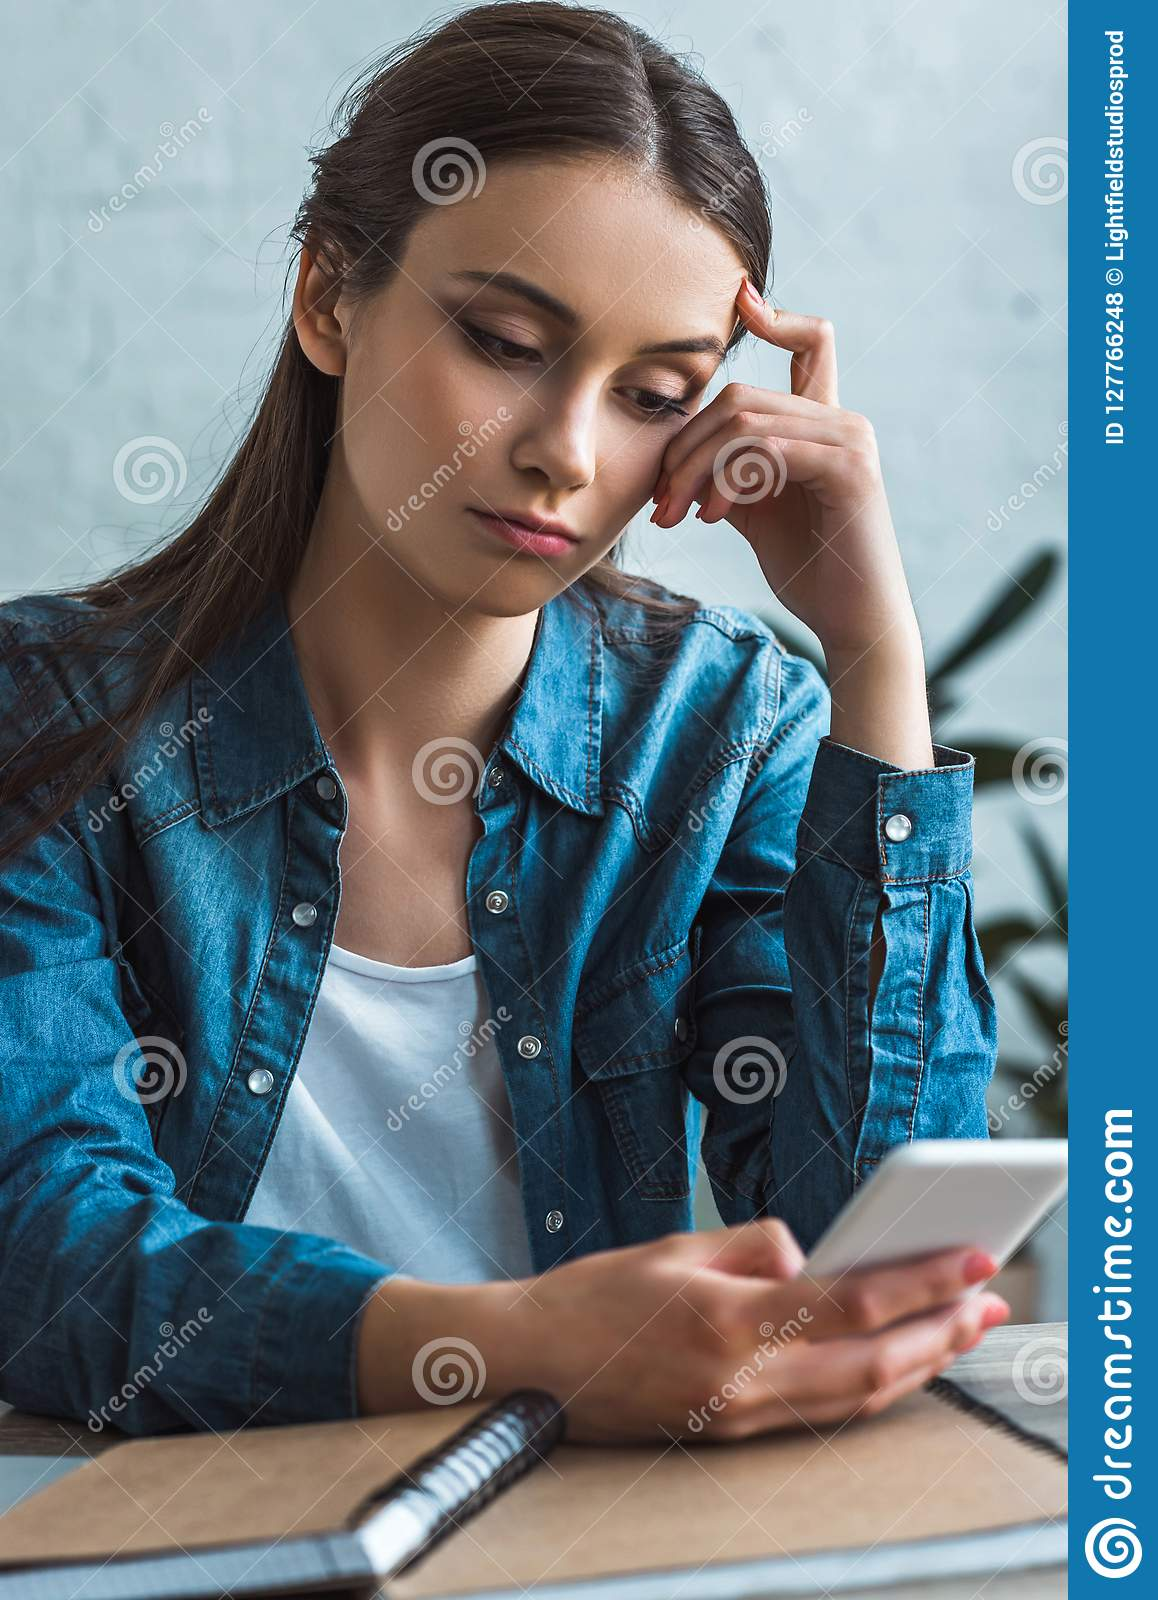 bored teenage girl using smartphone while sitting at table with notebooks